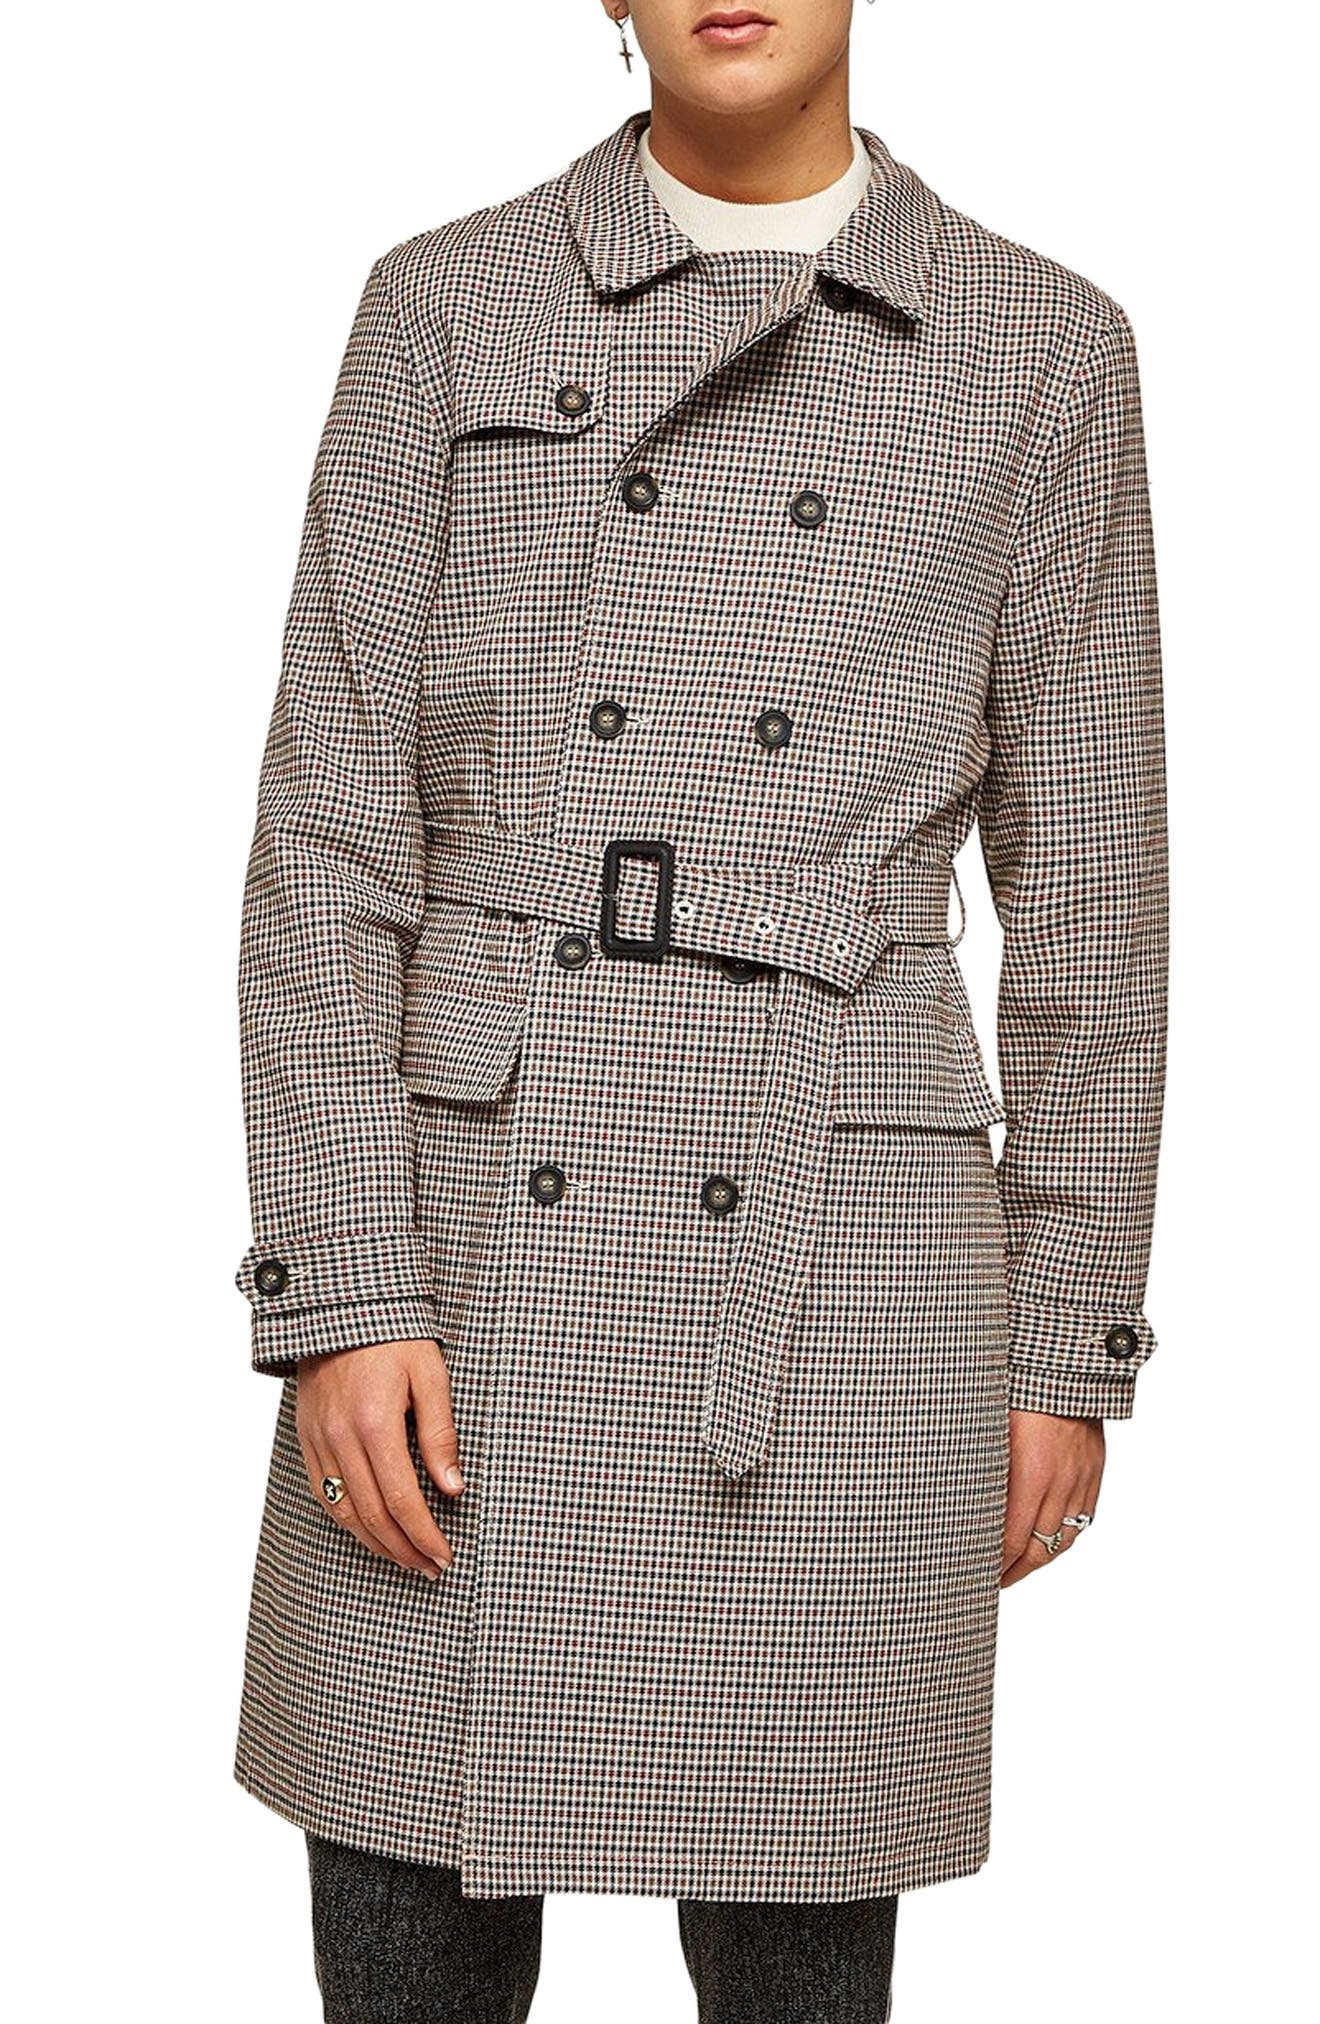 60s 70s Men's Jackets & Sweaters Mens Topman Houndstooth Trench Coat Size XX-Large - Brown $83.98 AT vintagedancer.com